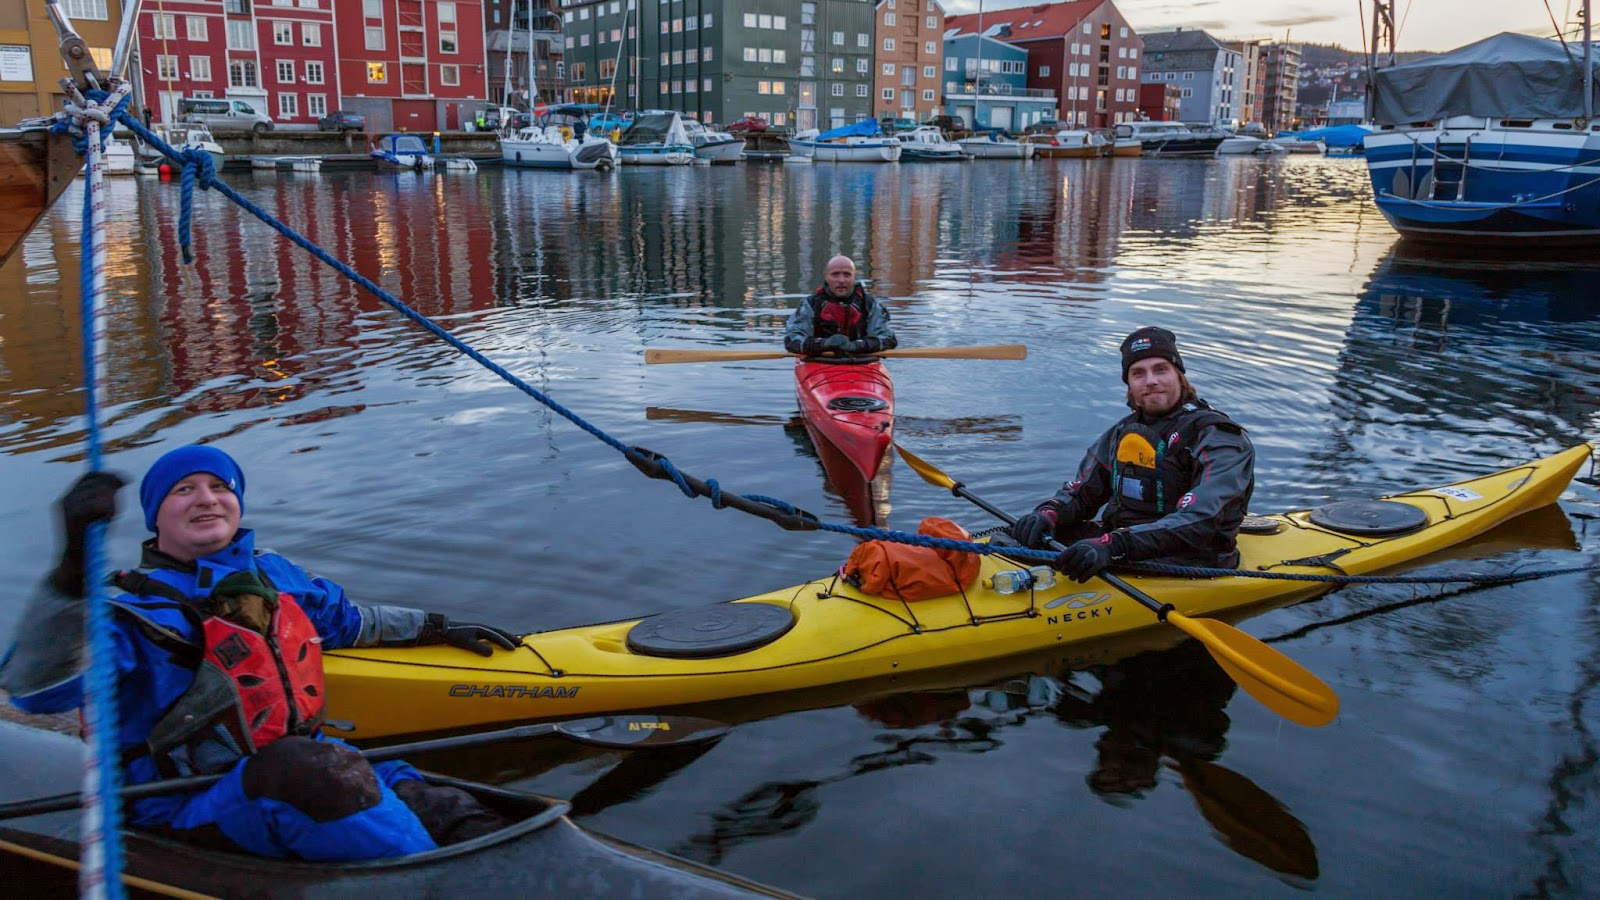 Kayaking - Trondheim, Norway (Photo Sven-Erik Knoff)